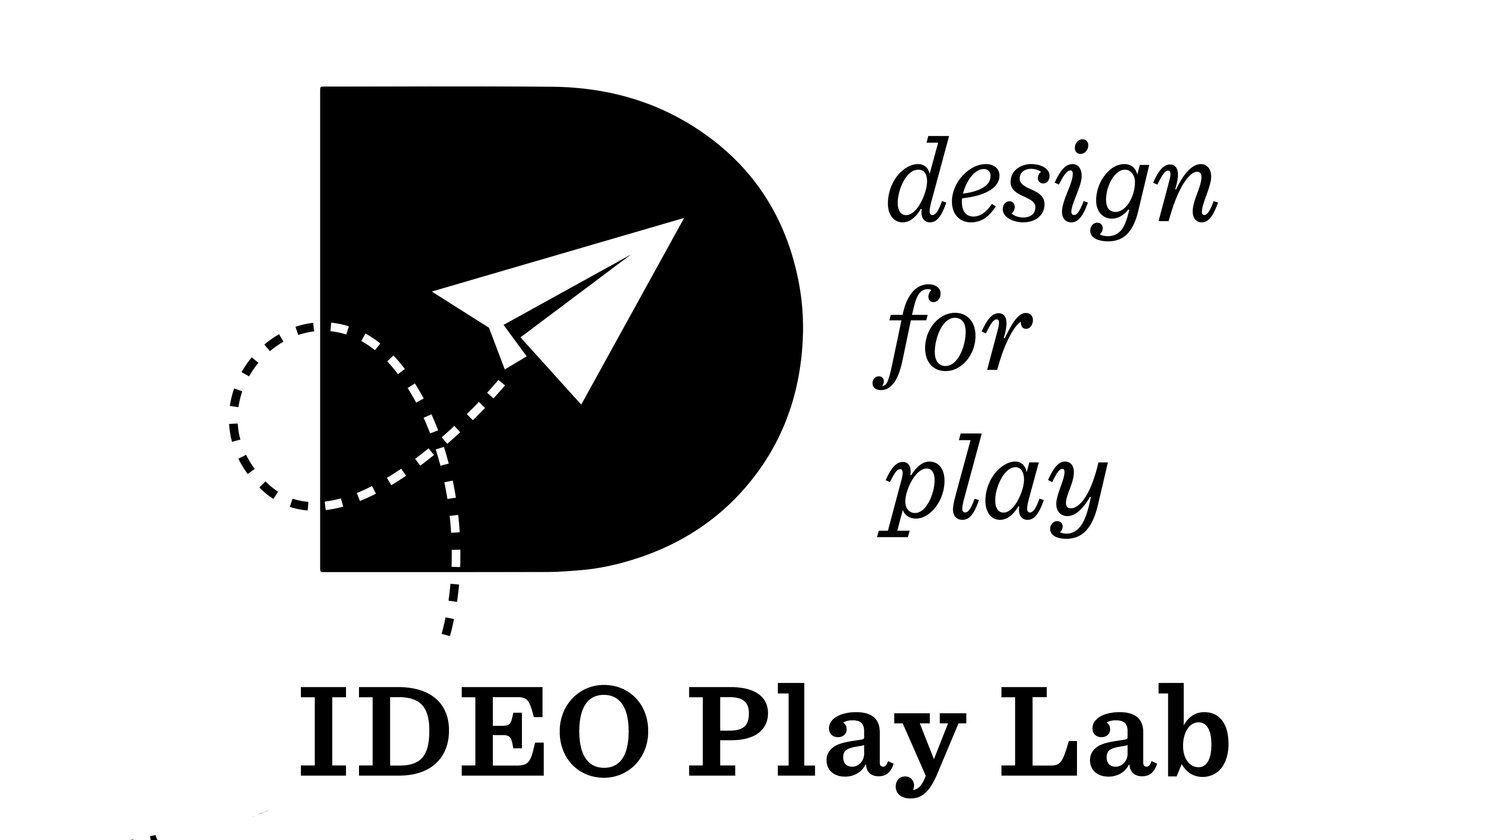 IDEO Play Lab